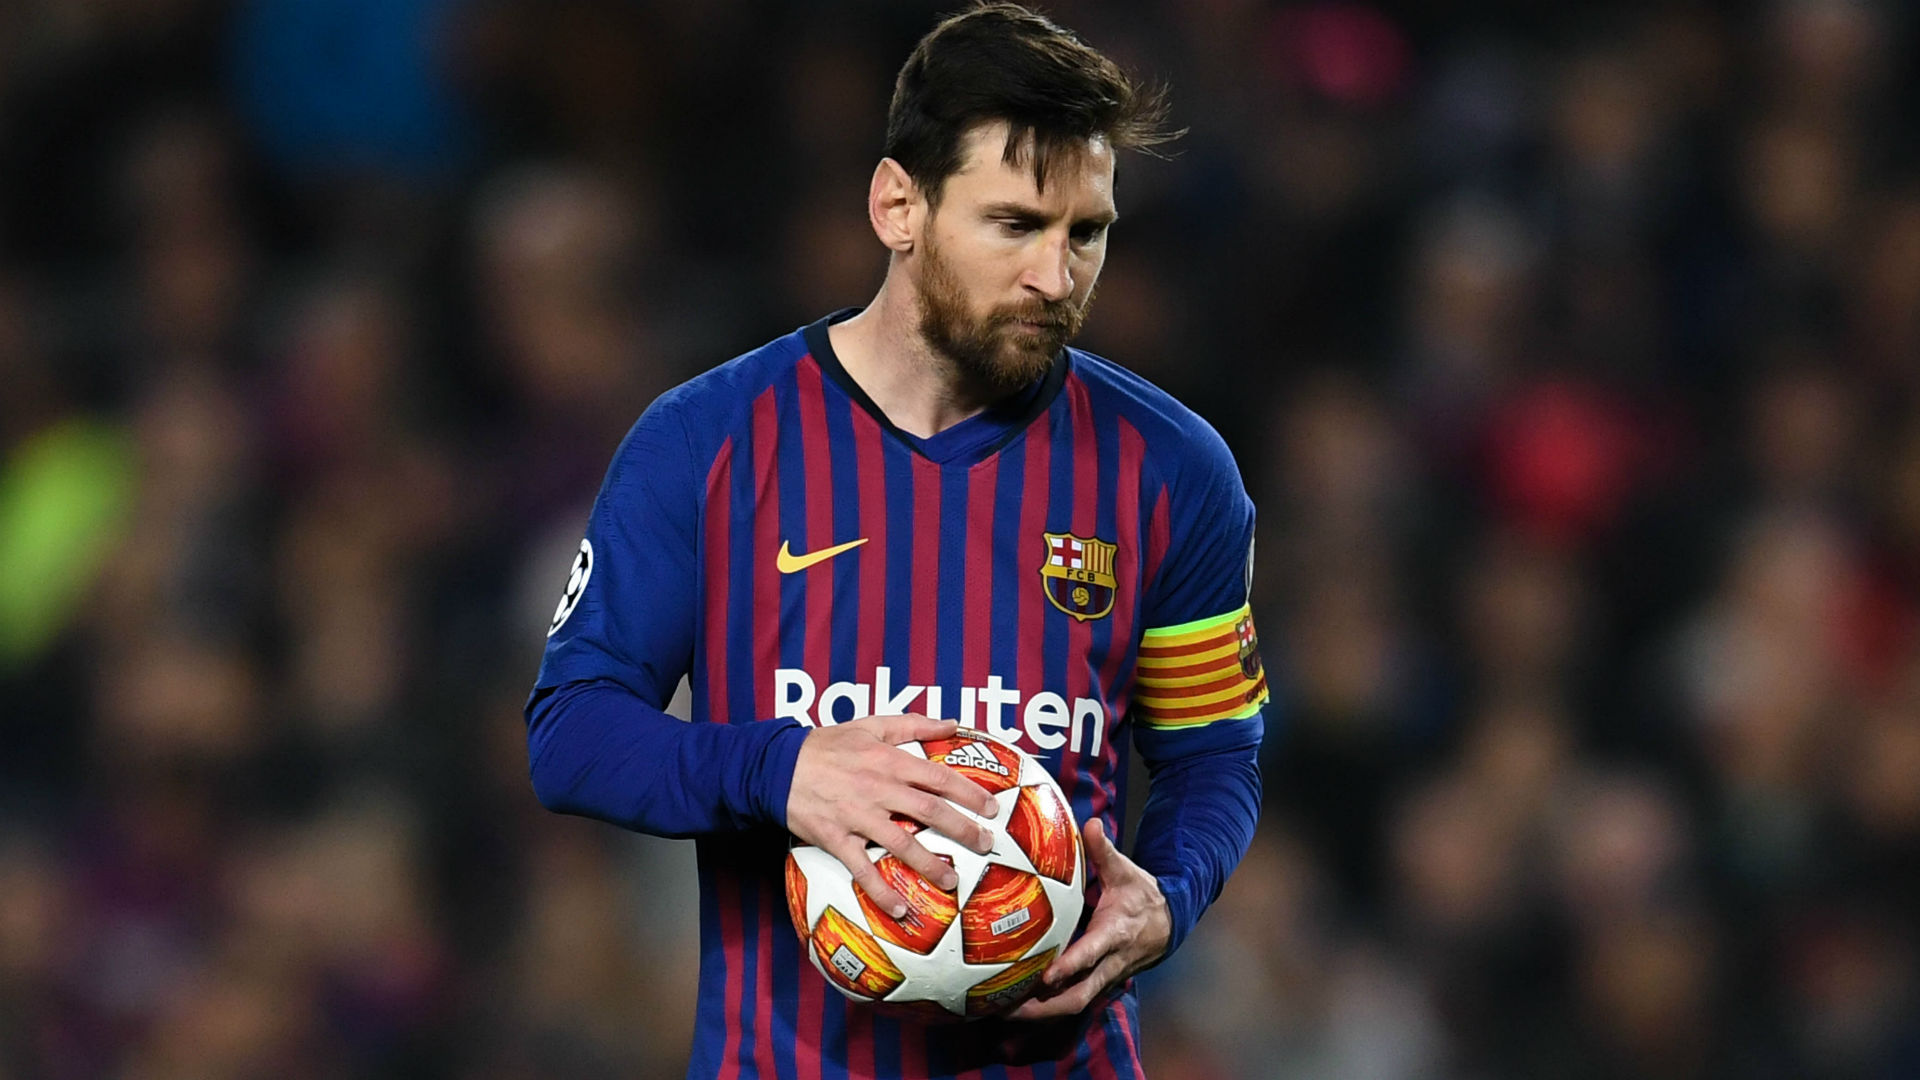 Barcelona 2-1 Real Sociedad: 5 Talking Points